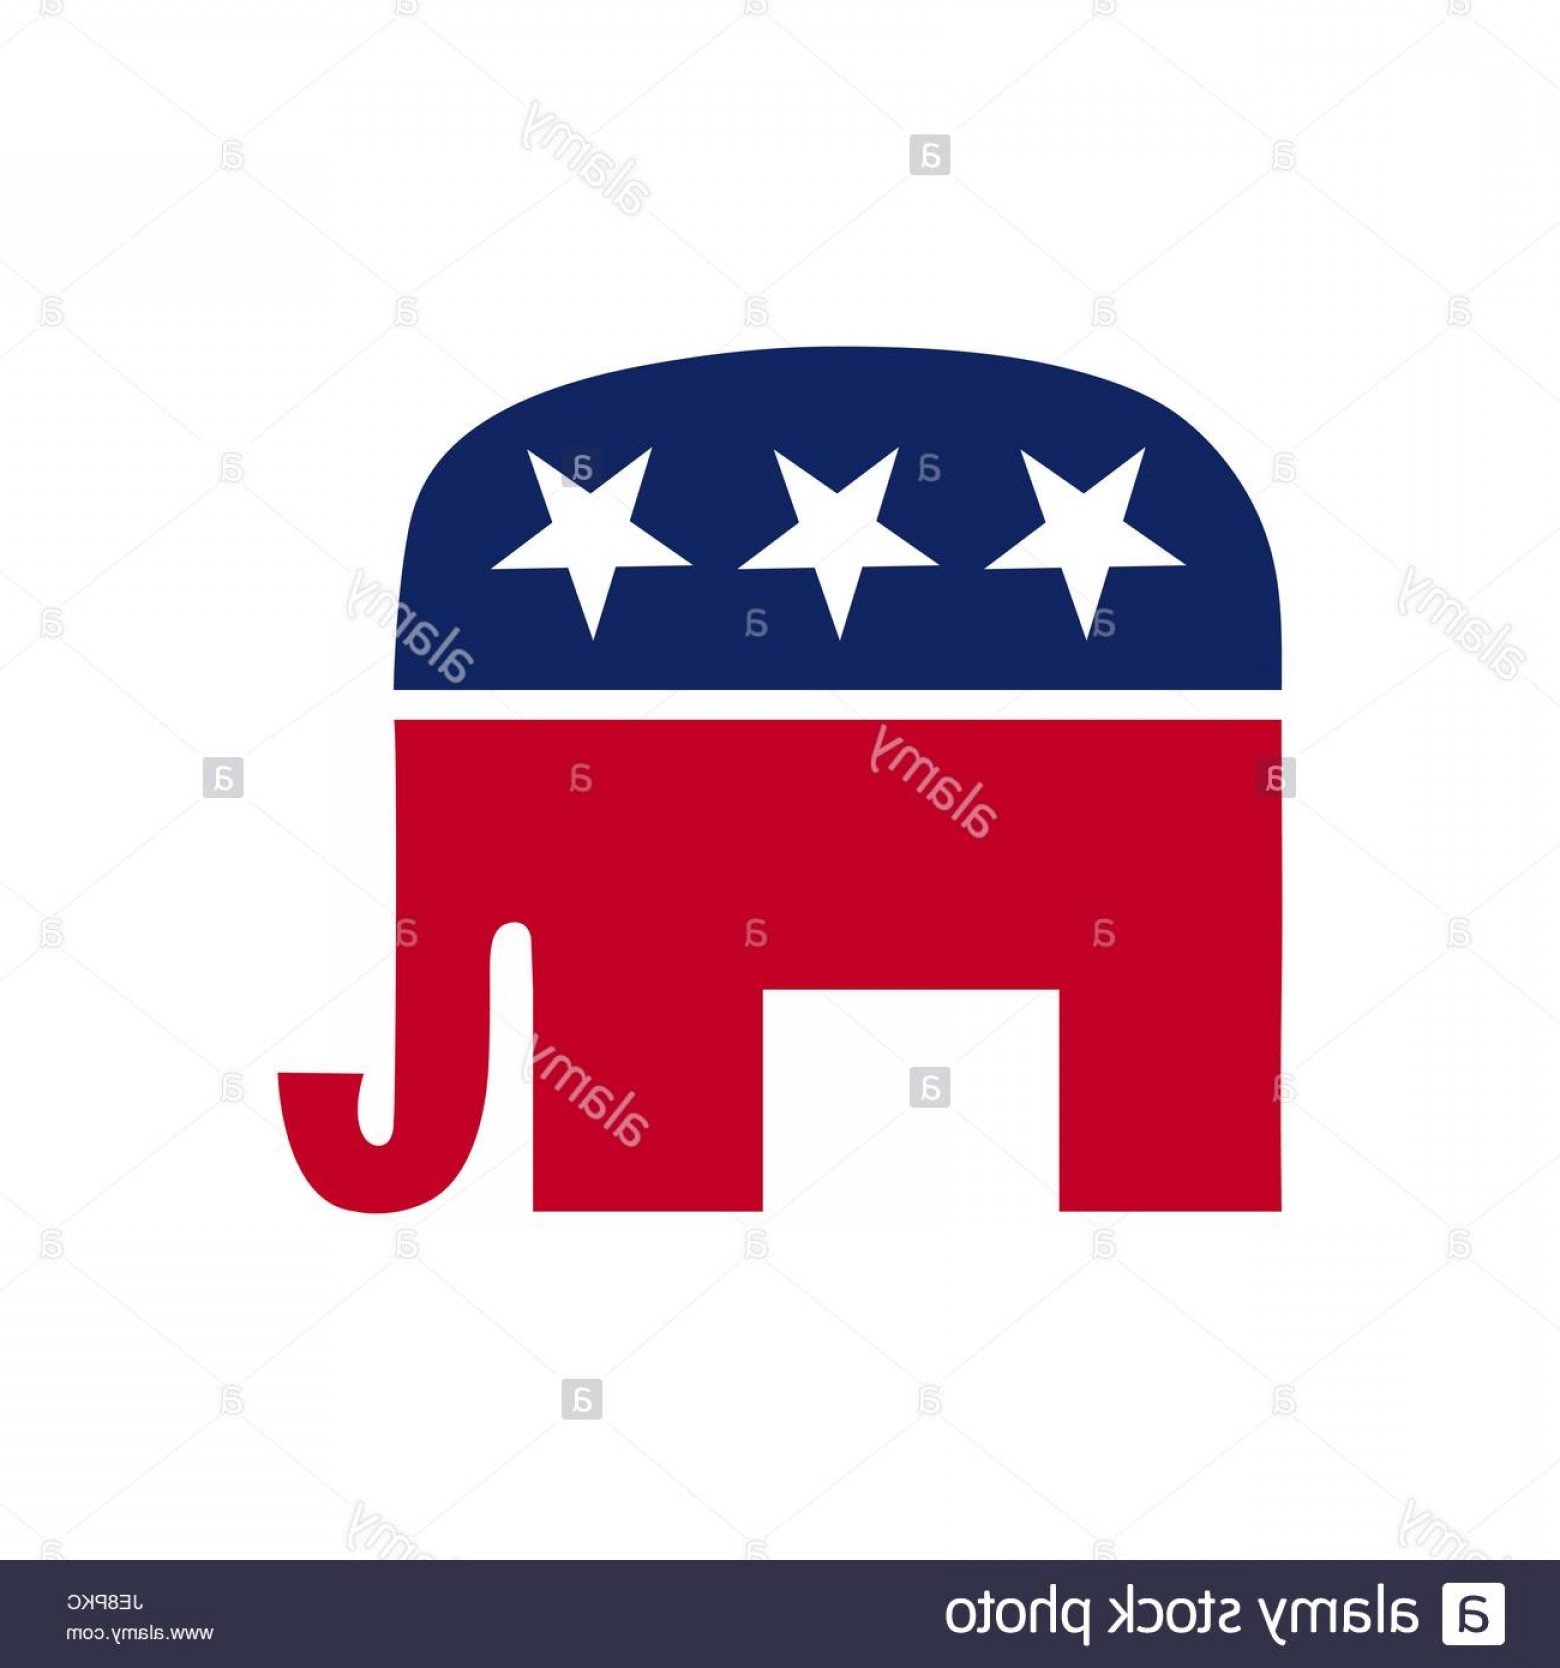 Republican Elephant Vector: Stock Photo Vector Illustration Of The Usa Republican Party Symbol The Elephant